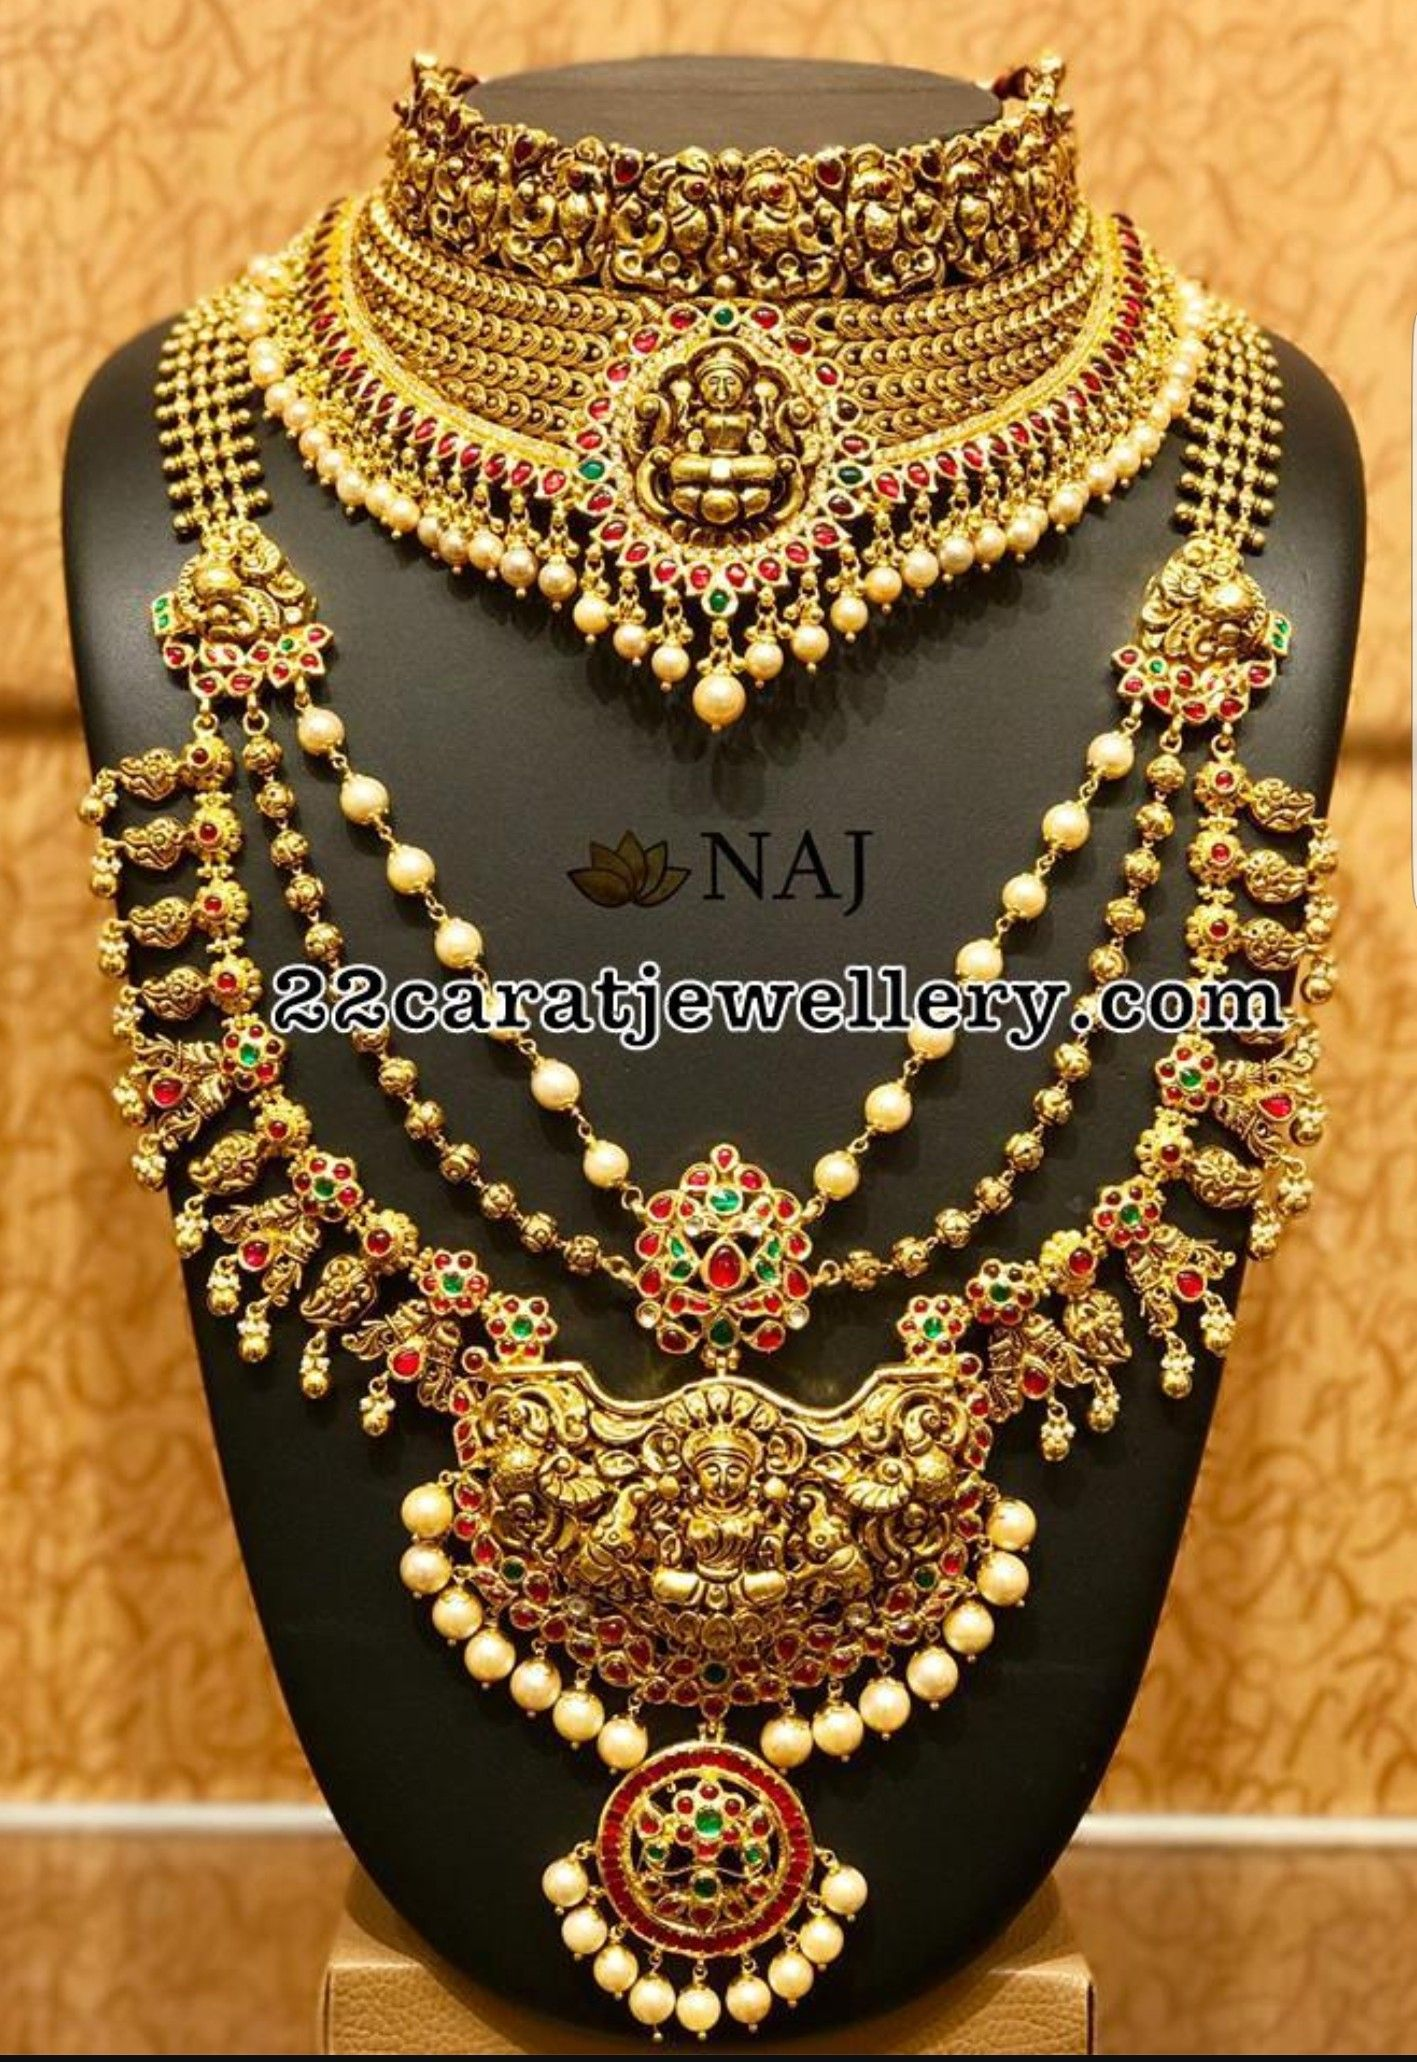 Pin by Binitha byju on Traditional jewellery | Pinterest | Indian ...